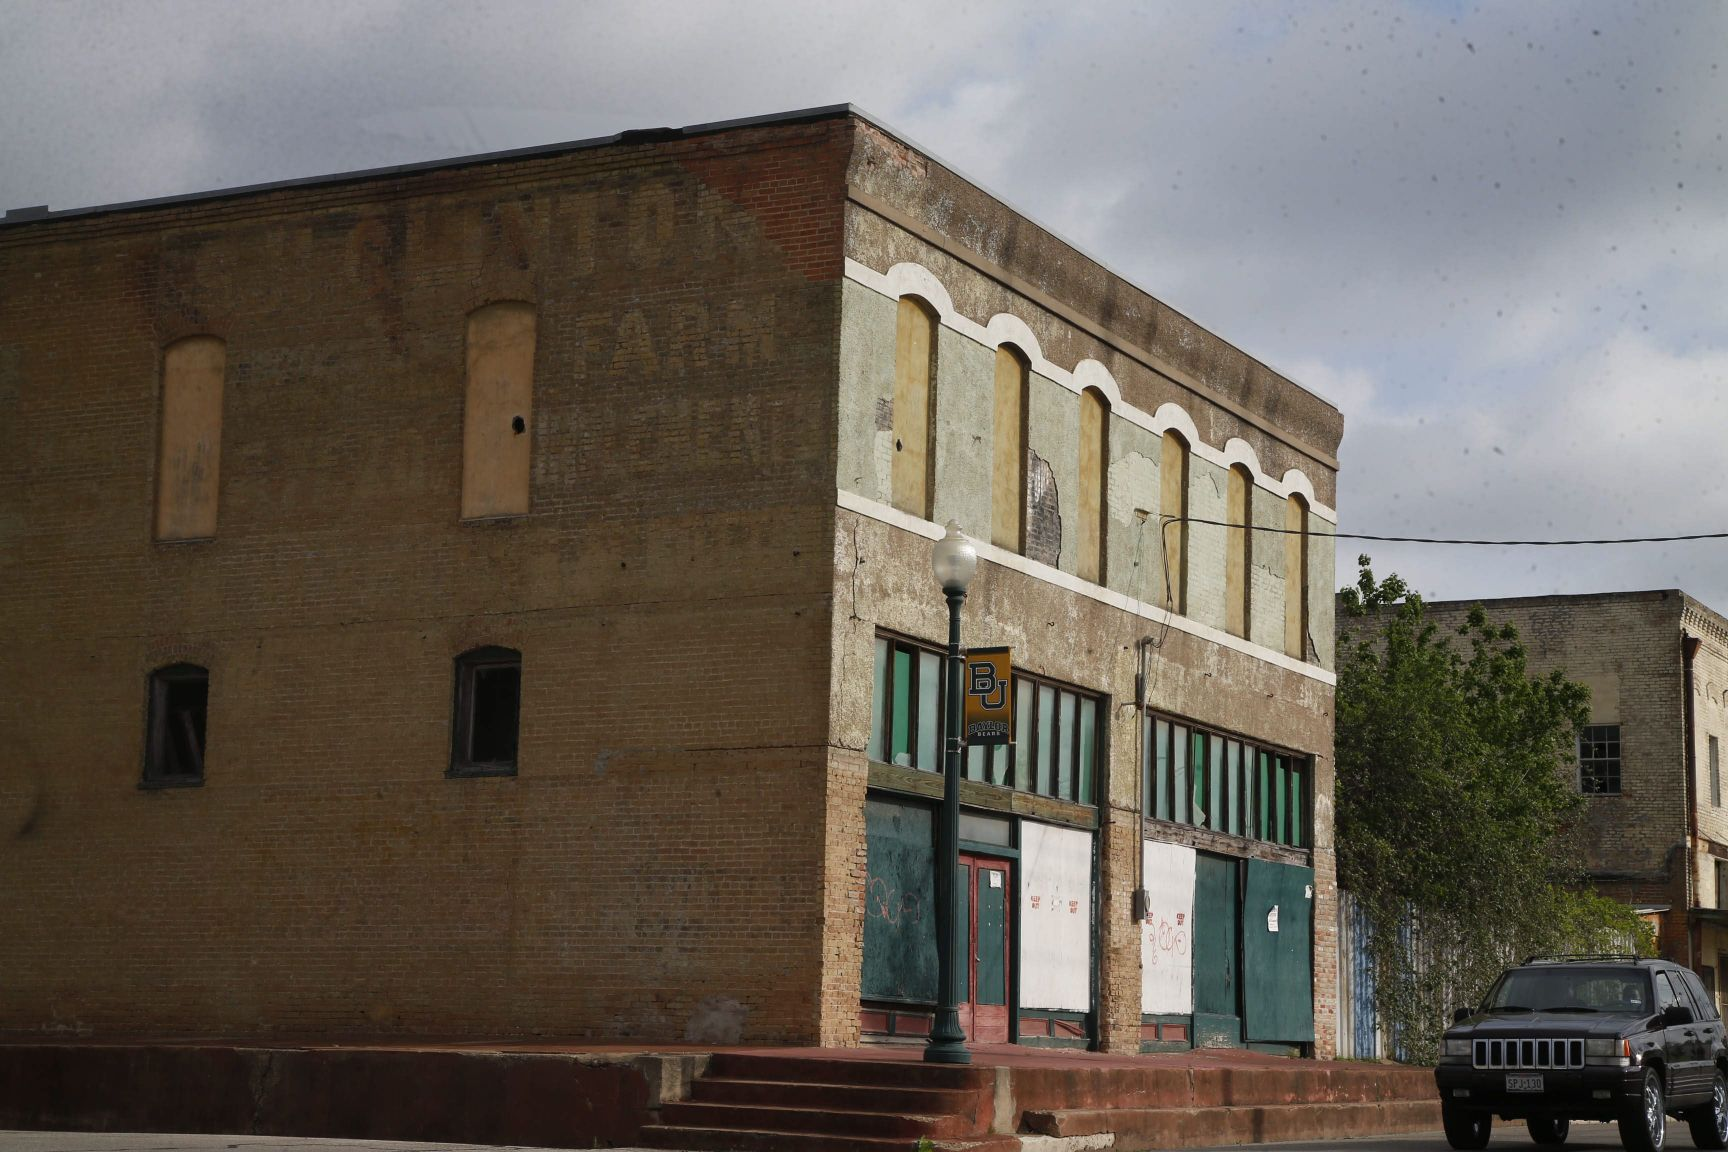 Slipping away: In search of Waco's most endangered historic